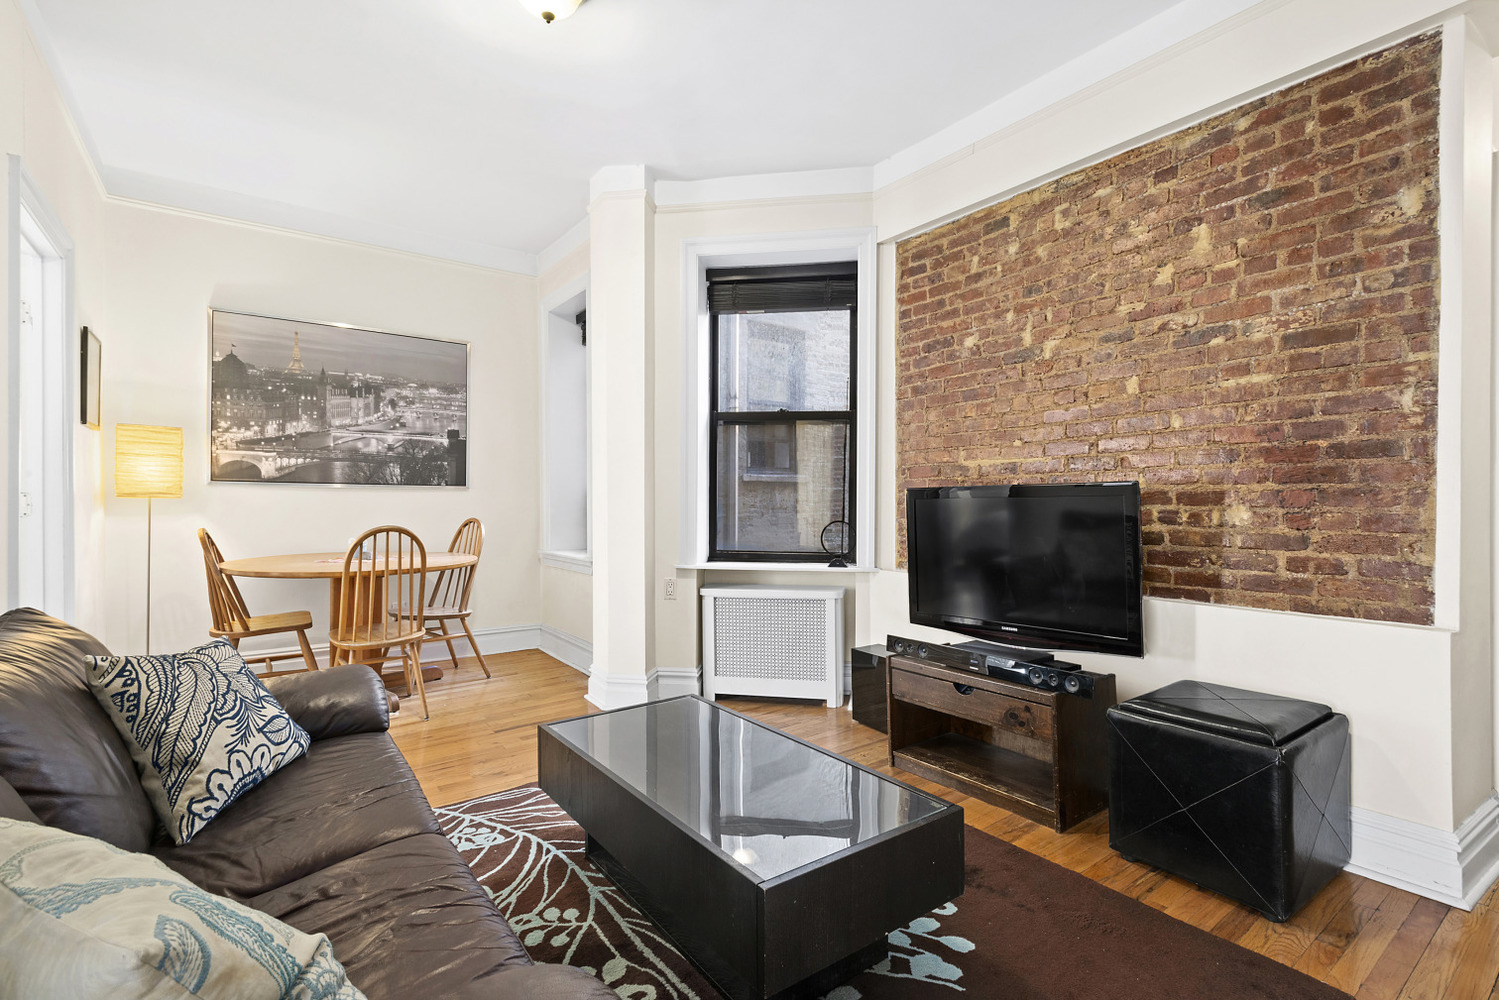 63 West 107th Street, Unit 33 Manhattan, NY 10025